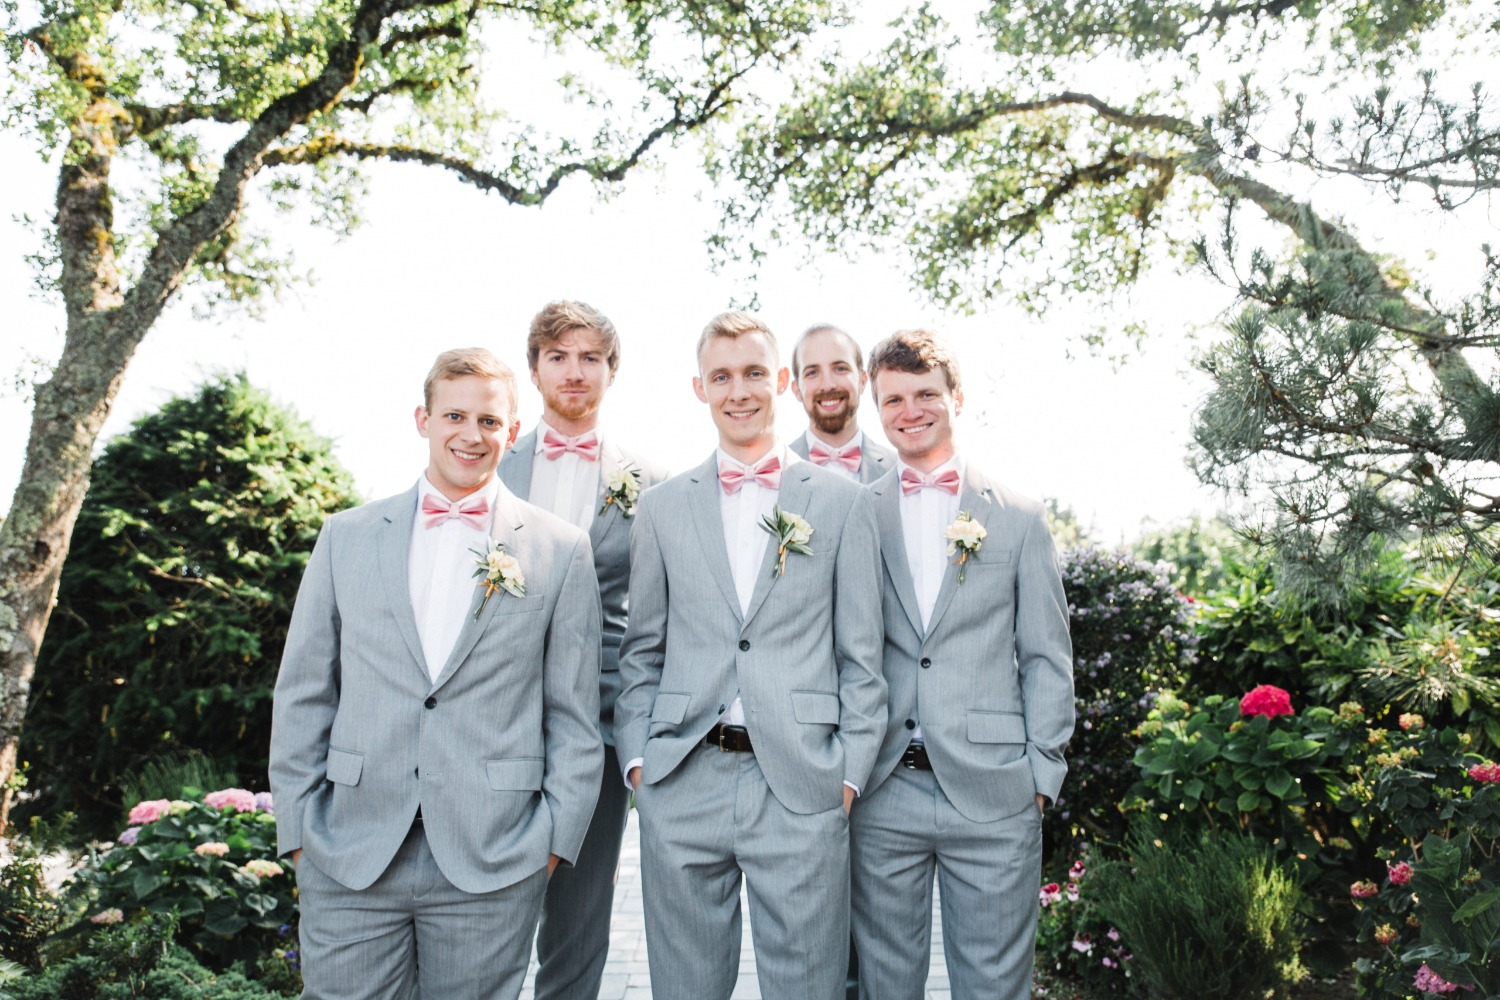 groomsmen in grey suits with pink bowties